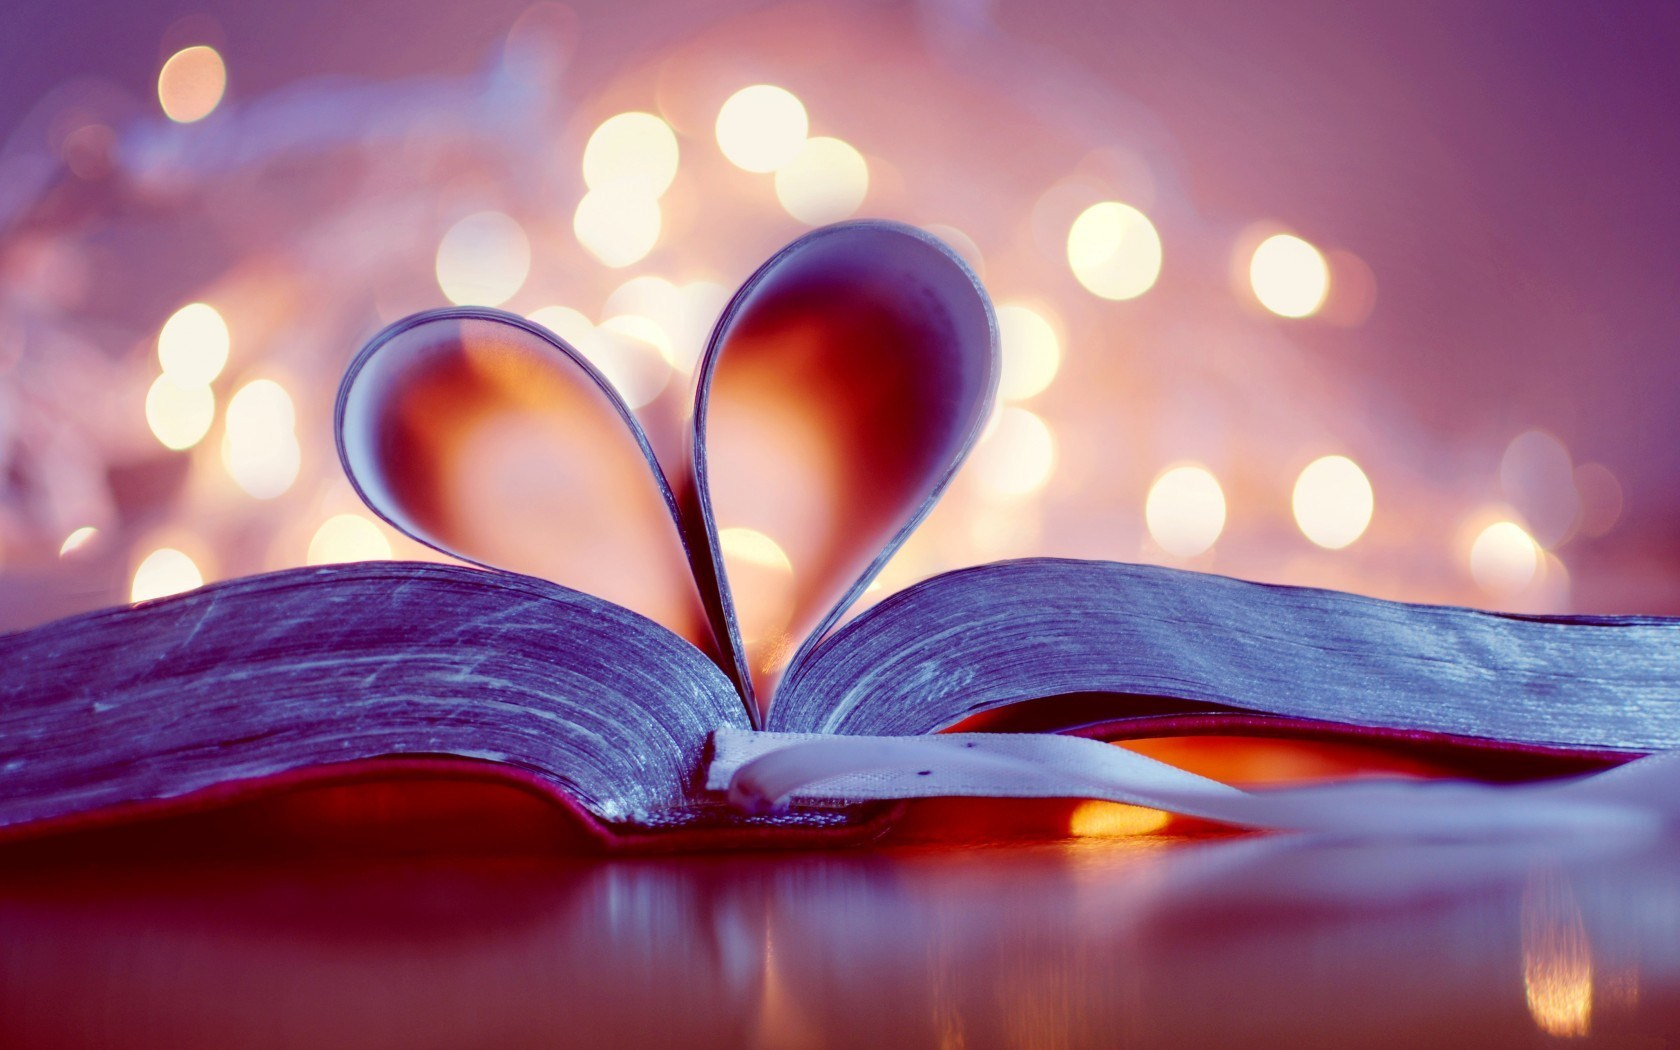 Book Heart Mood Love Bokeh